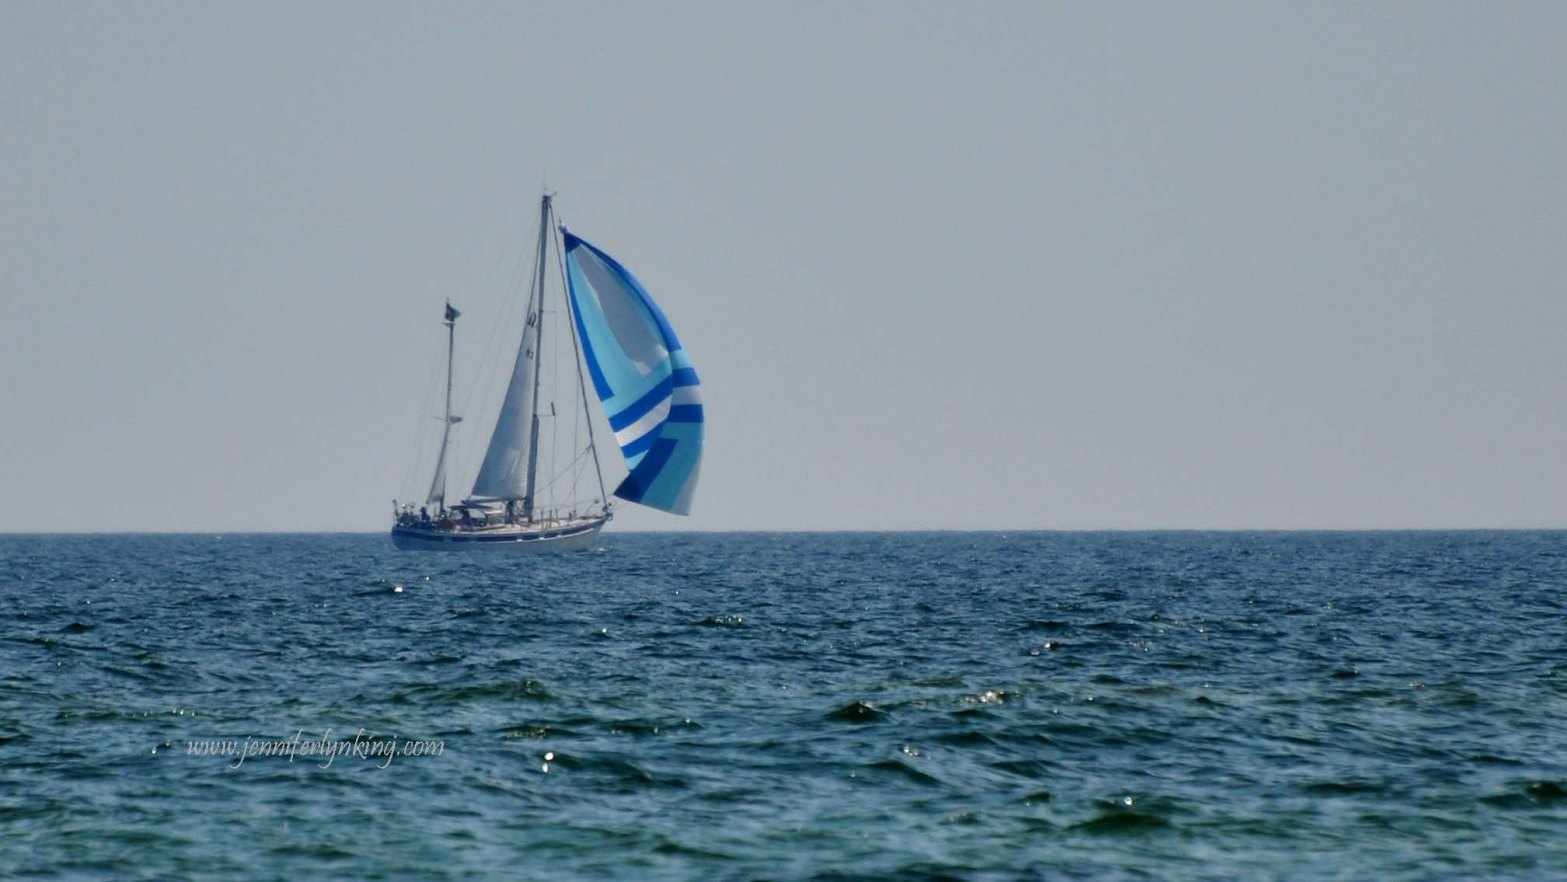 Throwing off the Bowlines (Sweden, Baltic Sea, summer 2011)